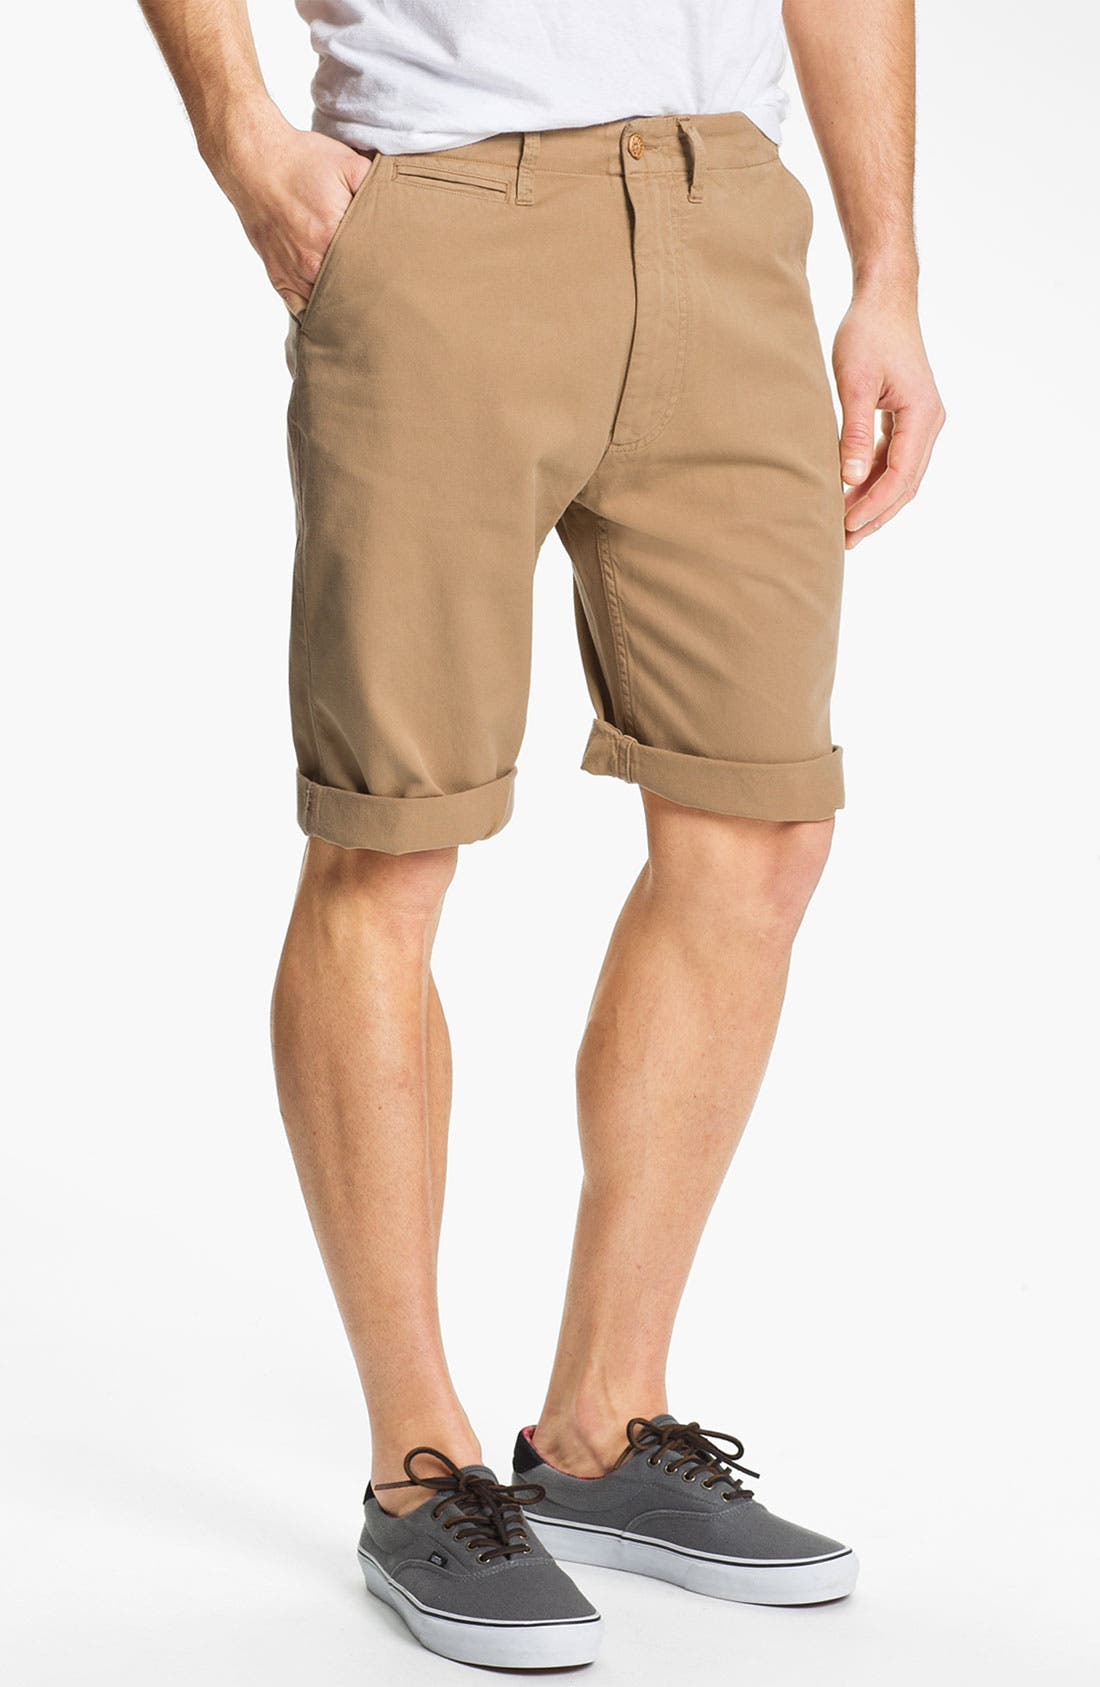 Alternate Image 1 Selected - Levi's® Made & Crafted™ 'Drill' Cotton Shorts